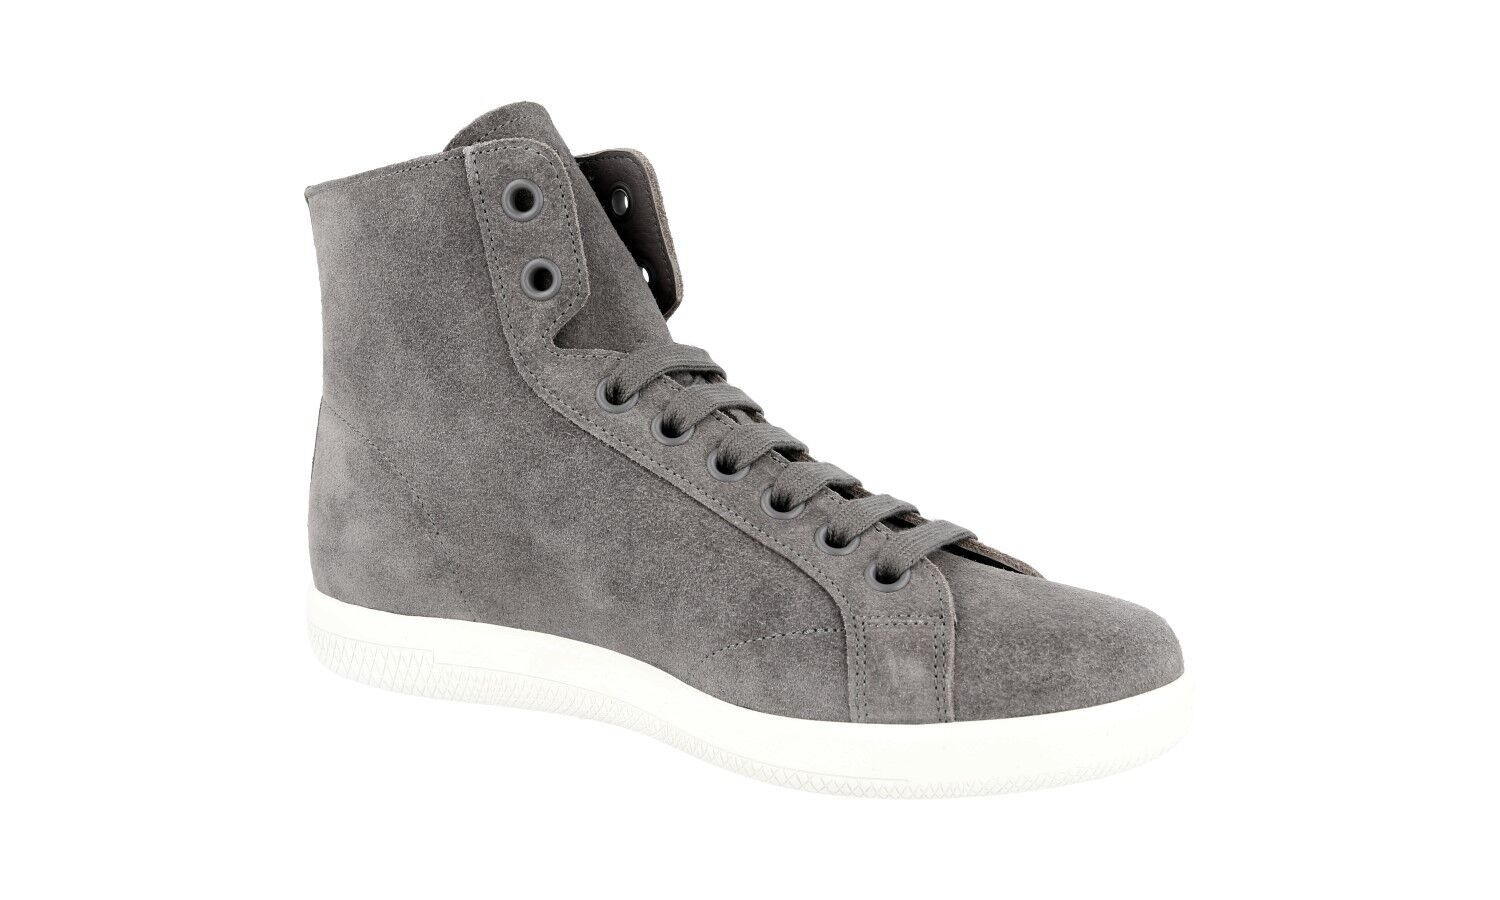 AUTH HIGH TOP TOP HIGH PRADA SNEAKERS SHOES 4T3149 GREY SUEDE NEW US 10 EU 43 43,5 9580b5